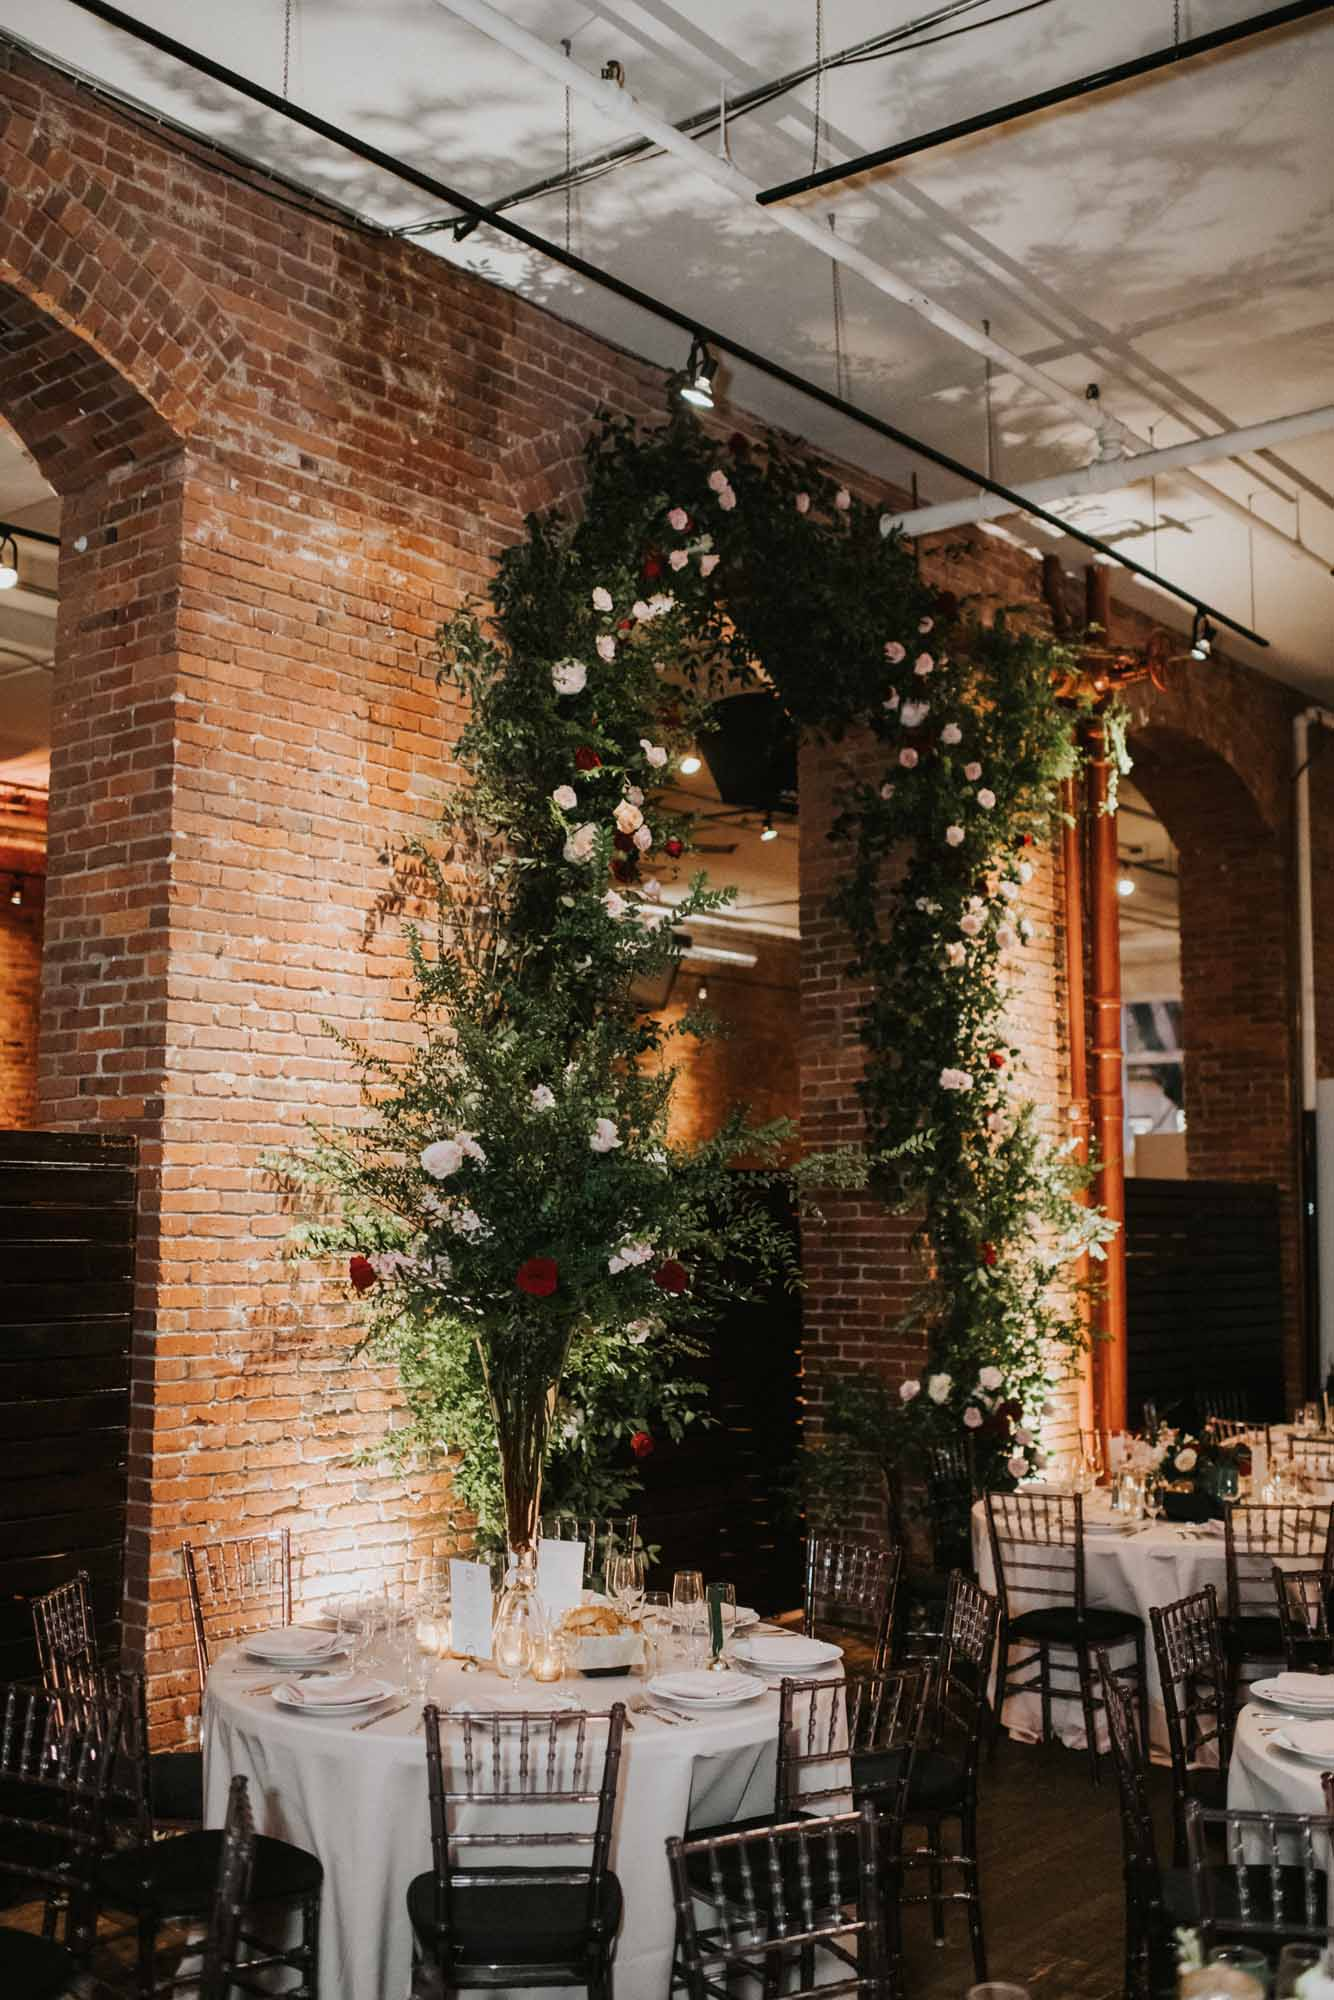 Tall greenery arch attached to brick archway